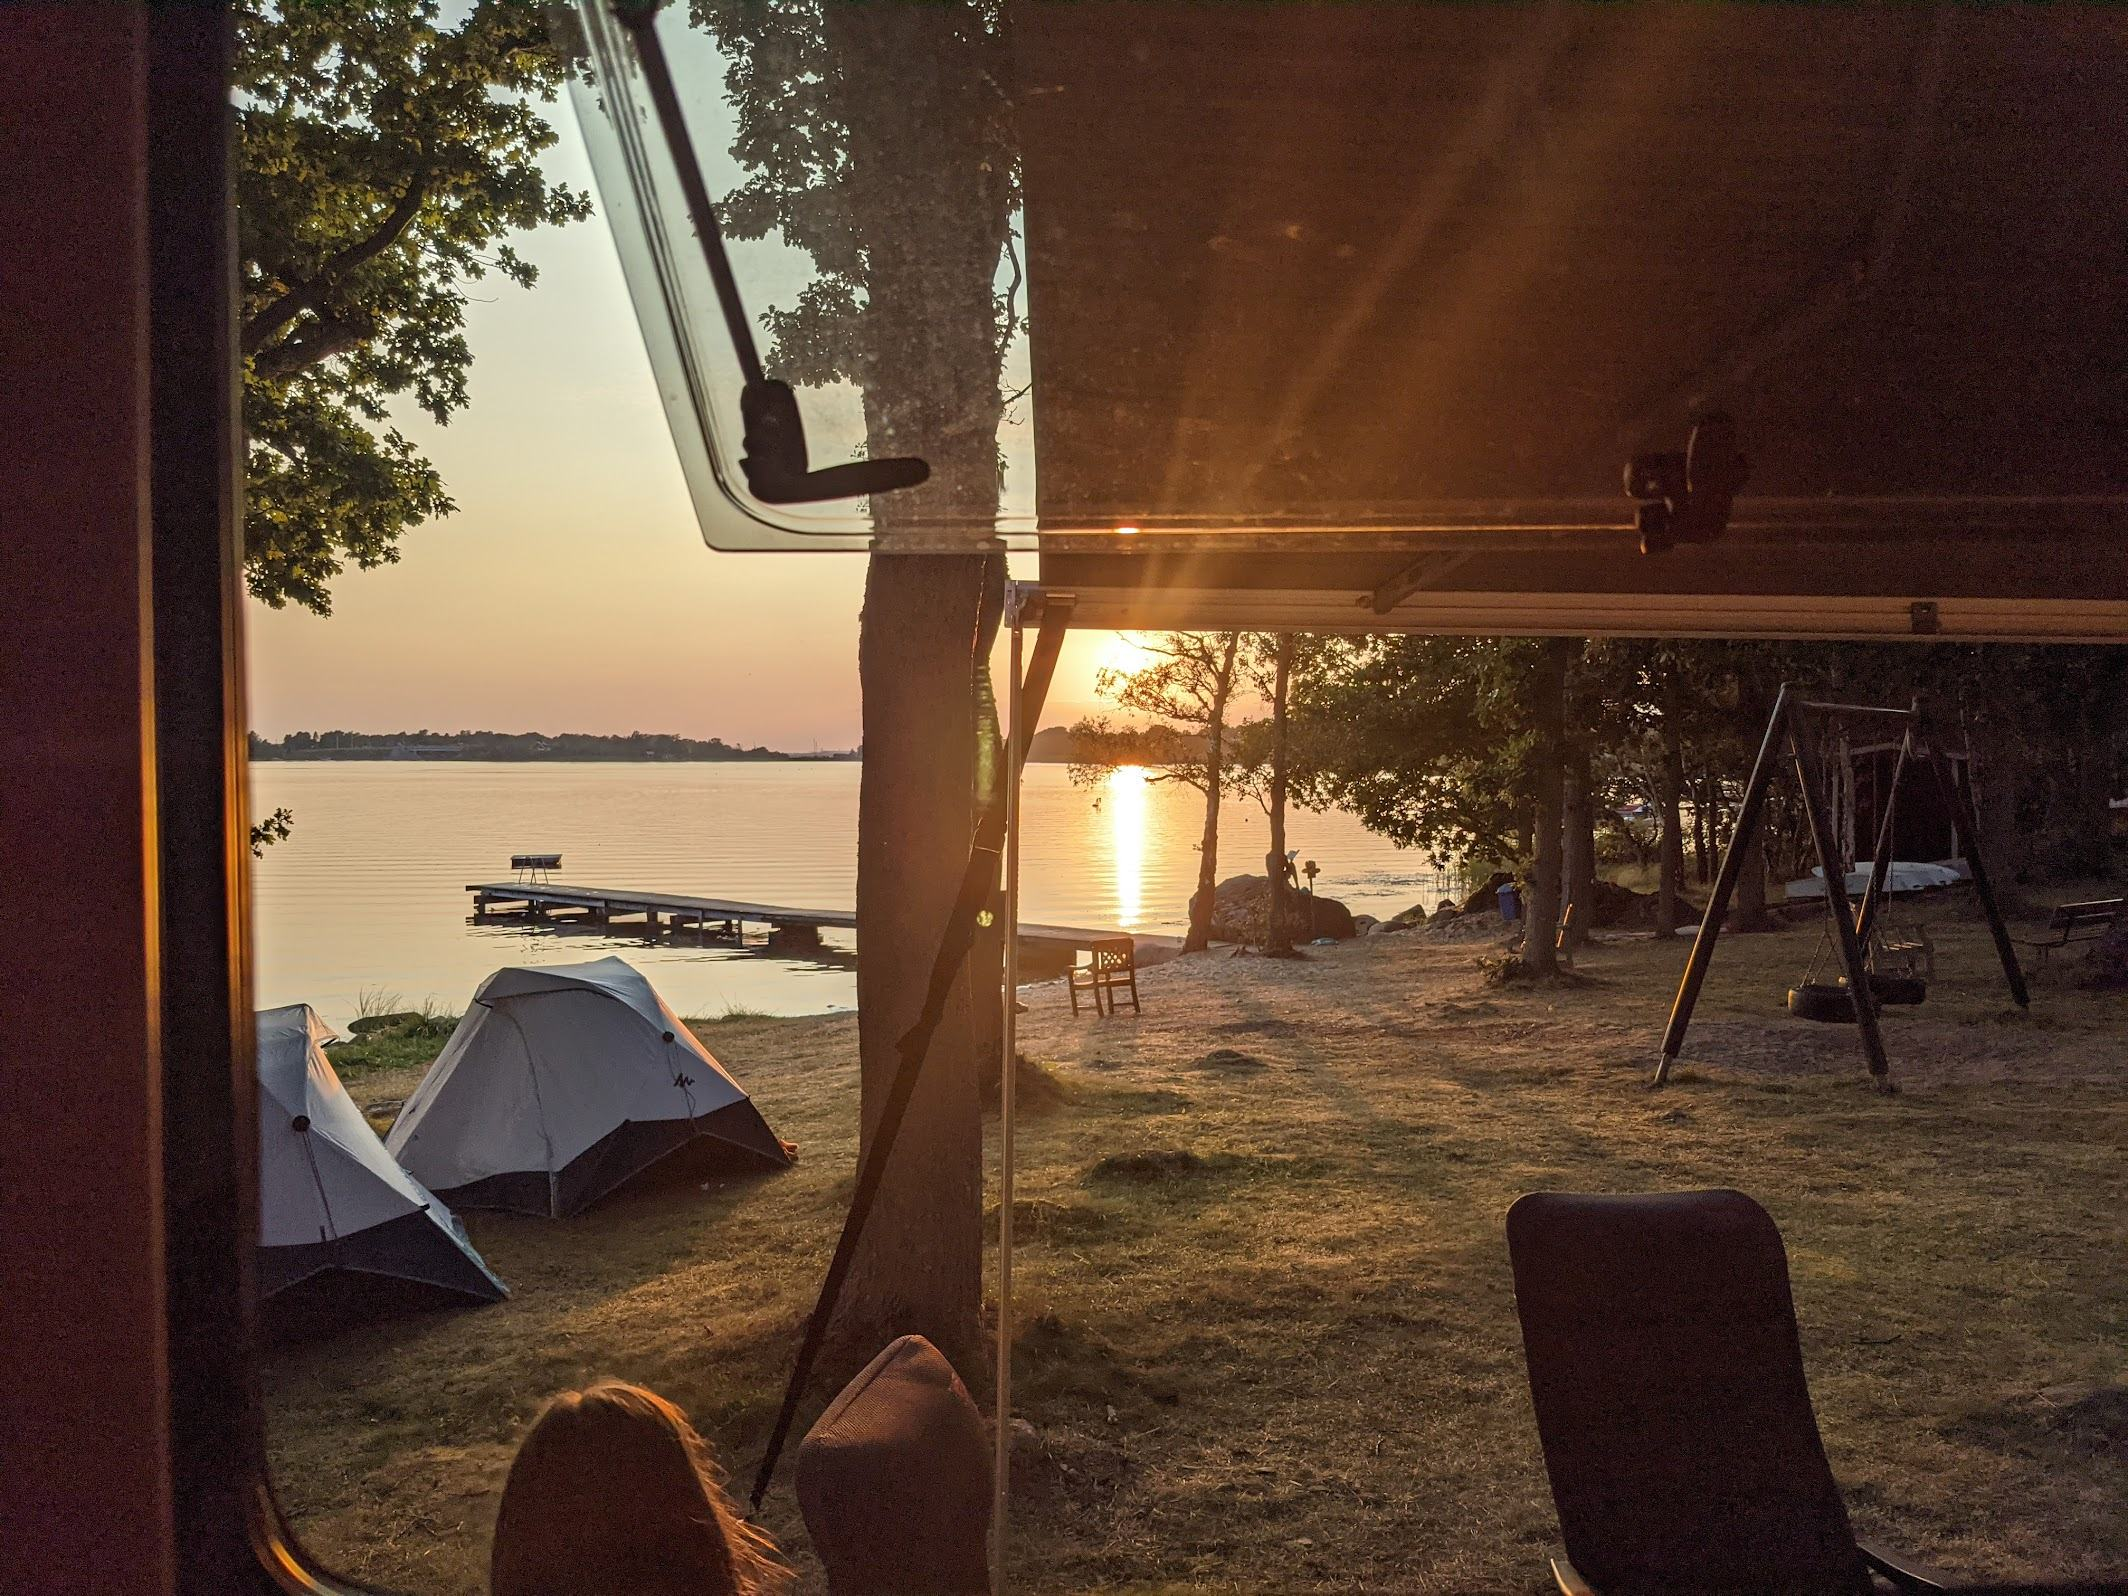 View from the camper